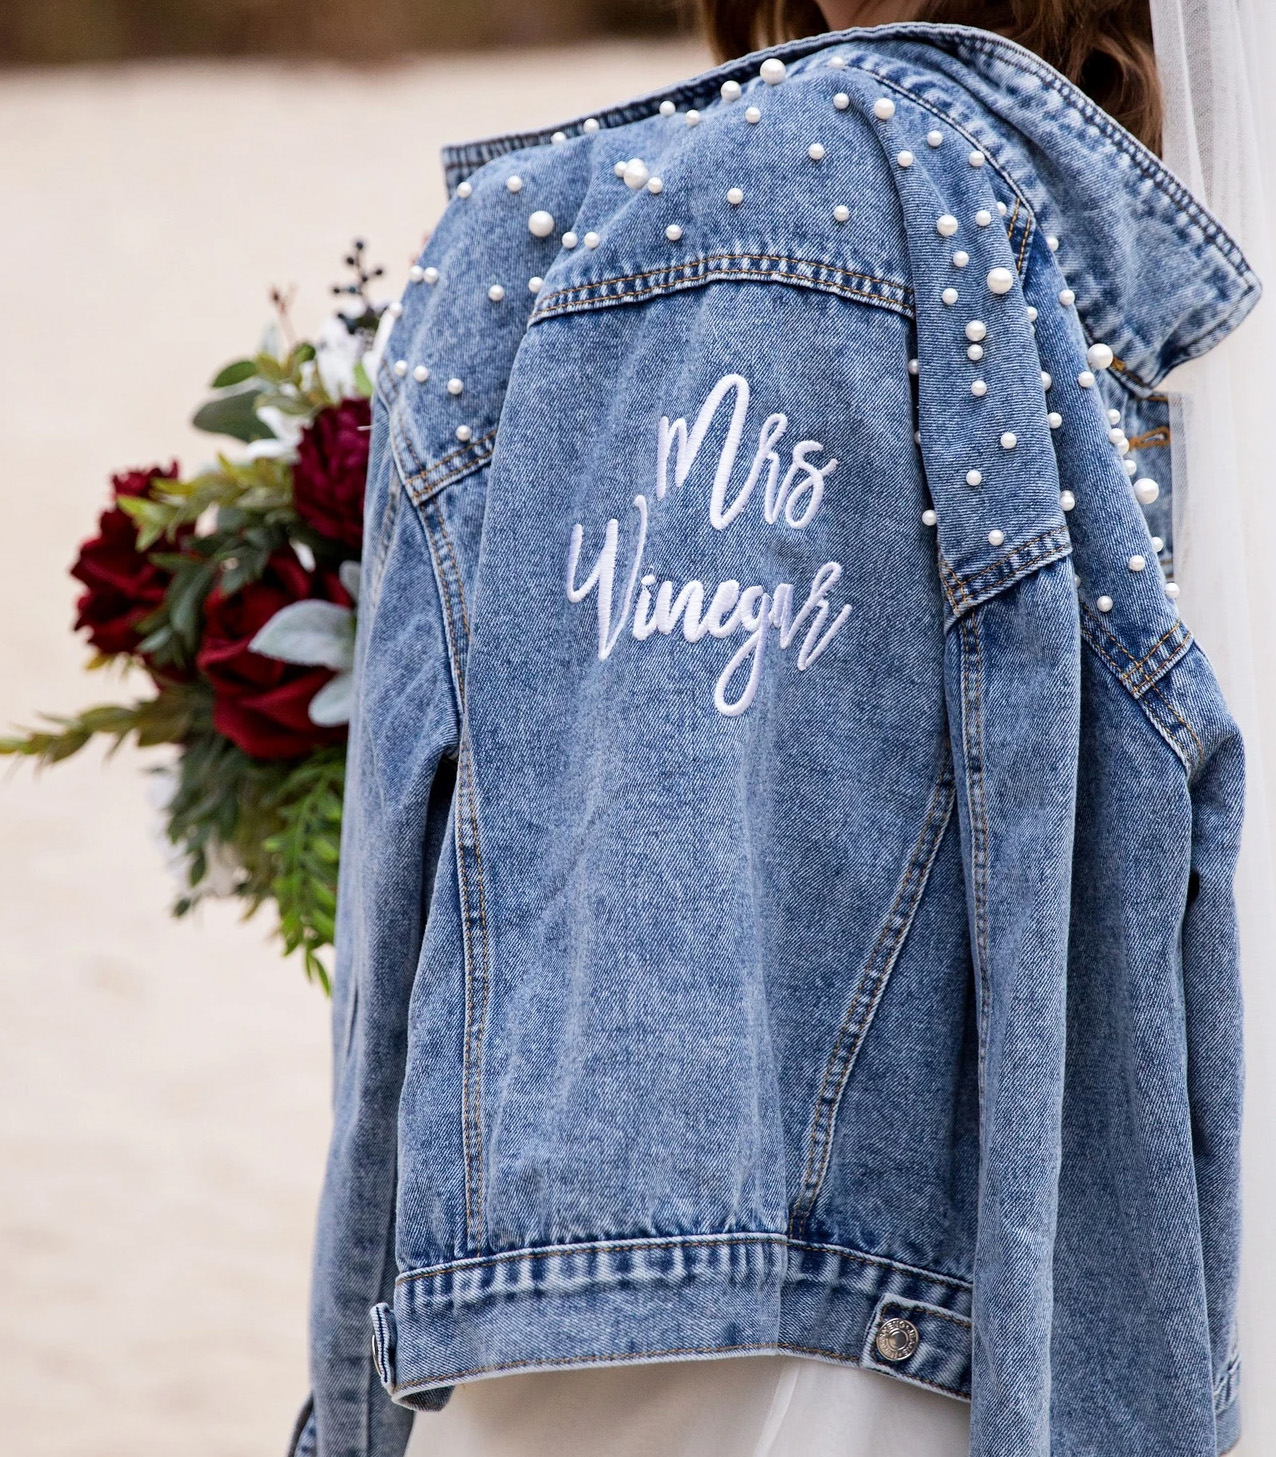 pearl denim jacket for the bride